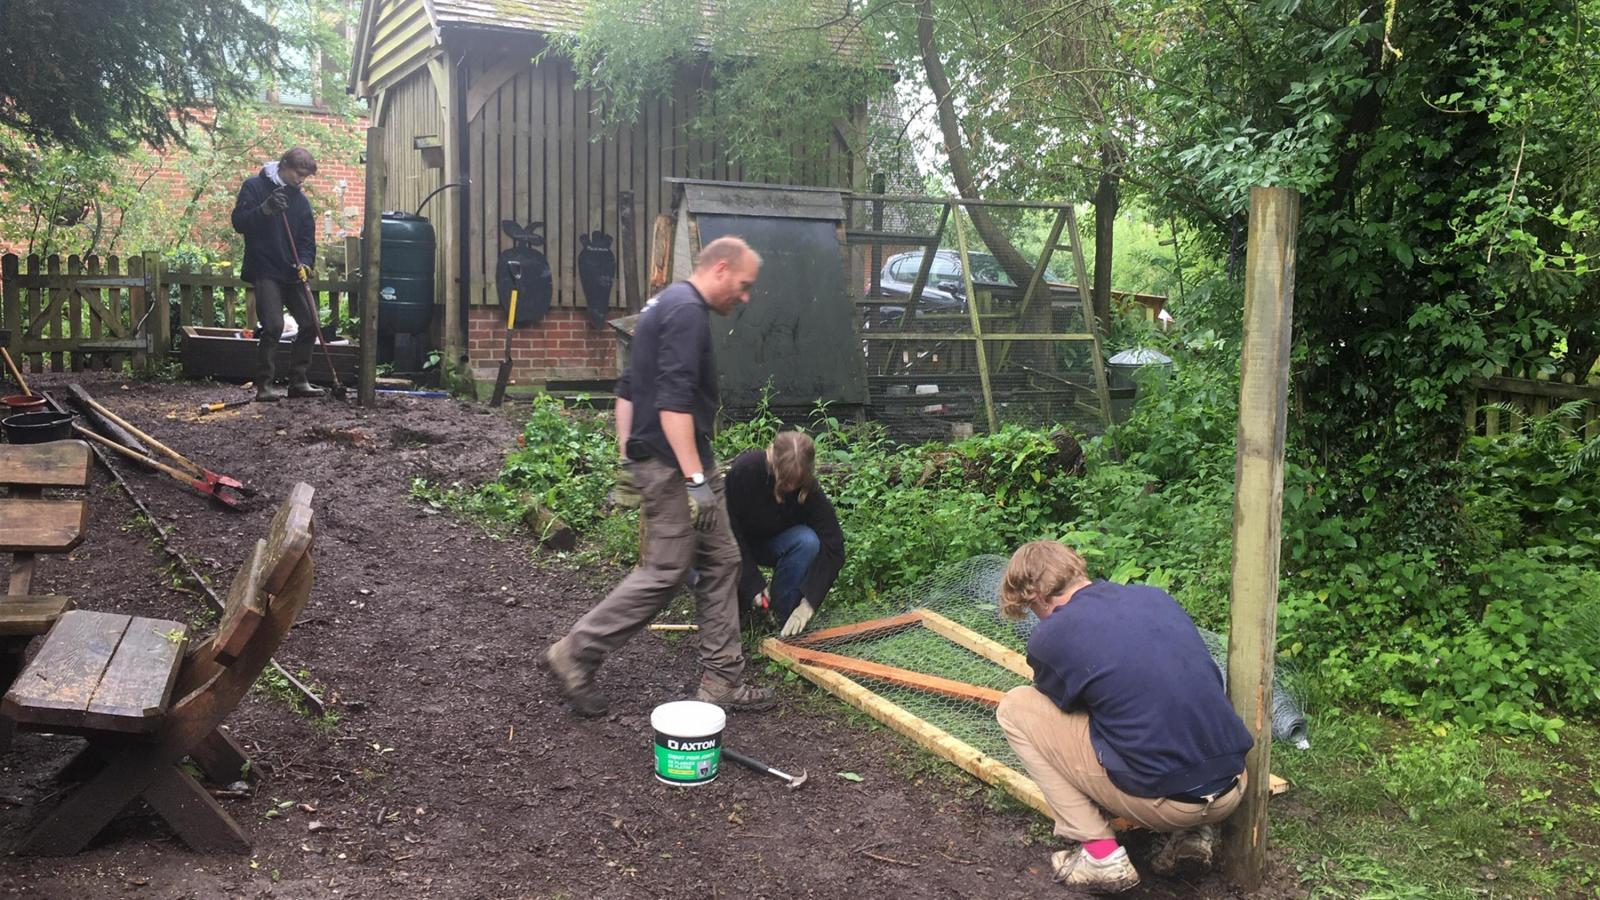 Working party at Steep Primary